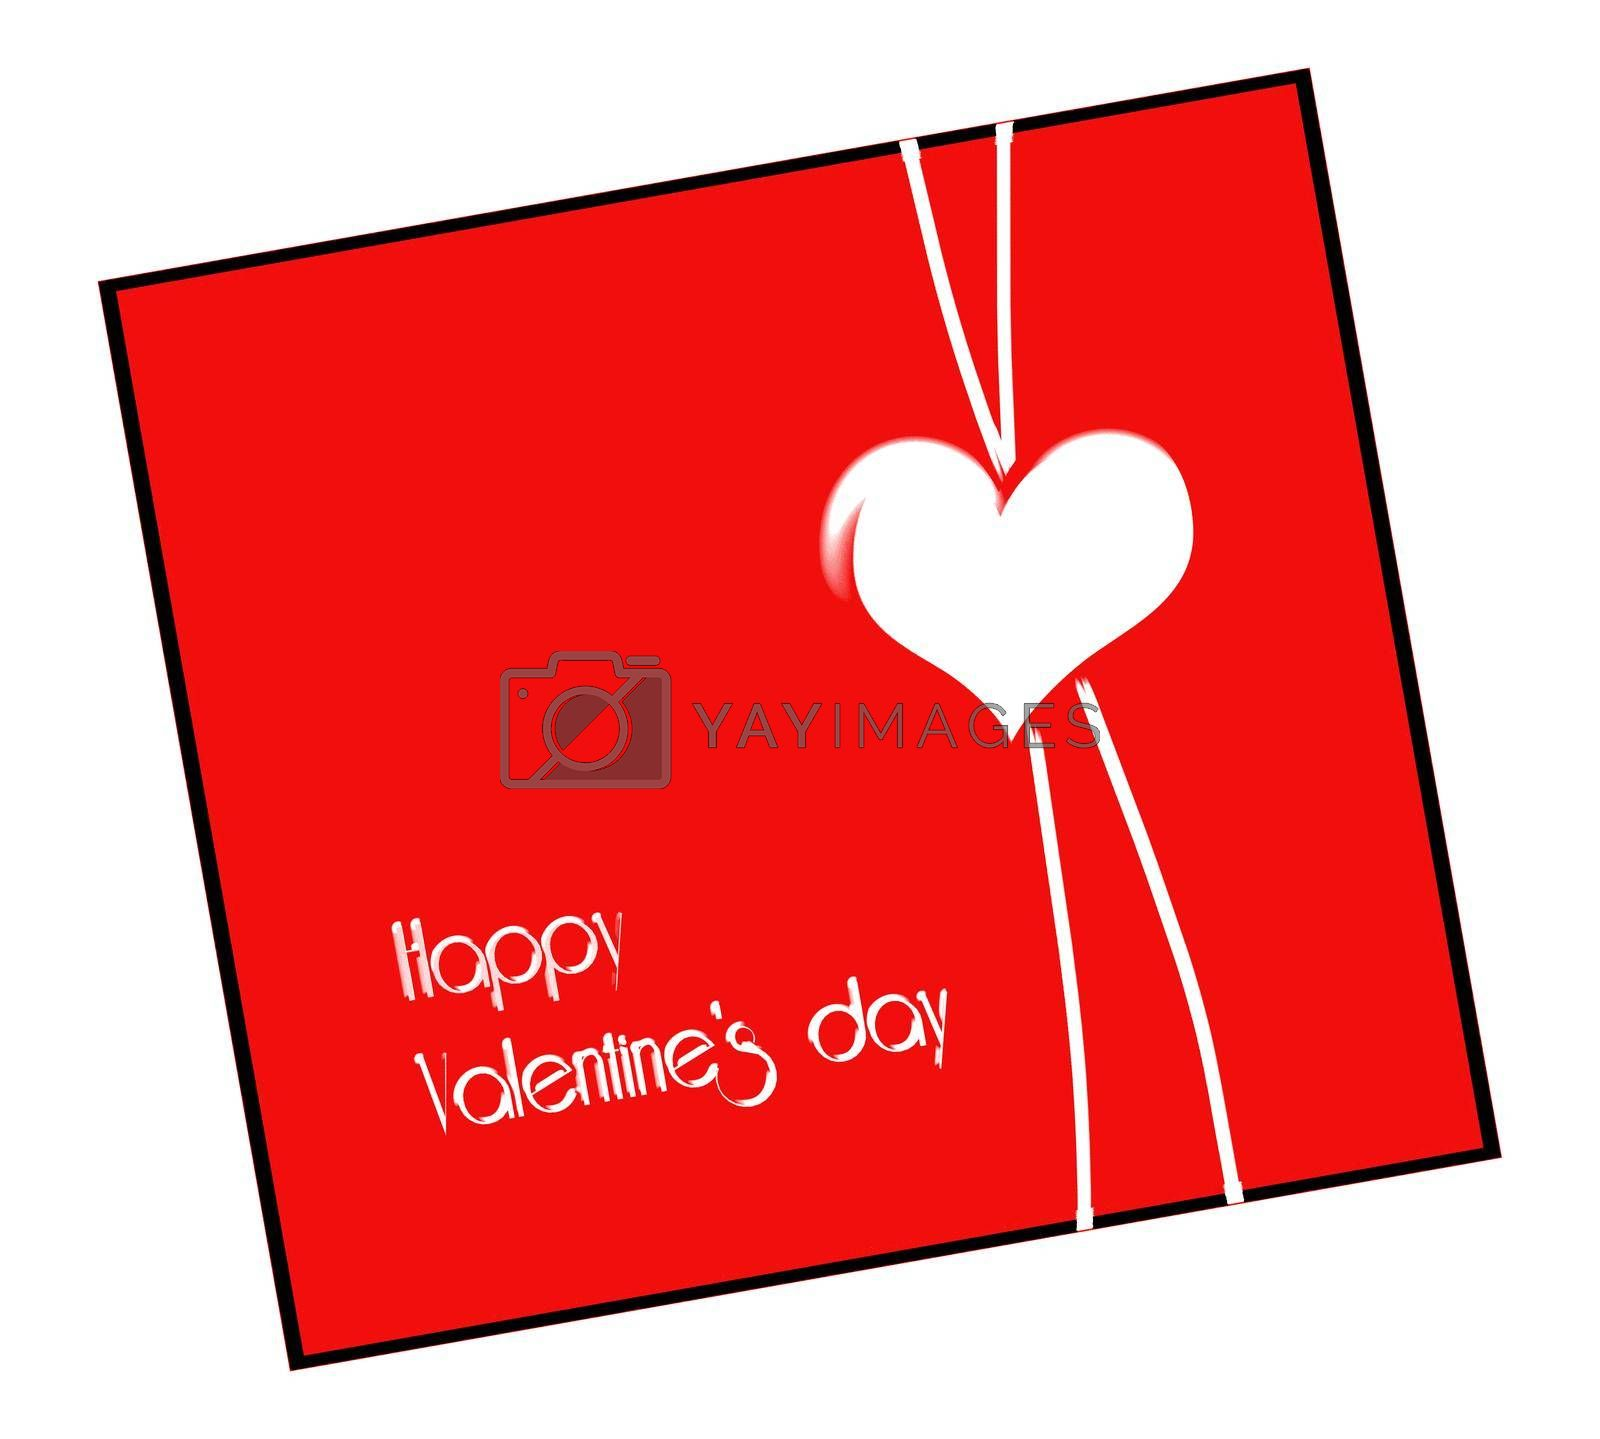 Modern Valentine's card in red. Text Happy Valentines day. Illustration